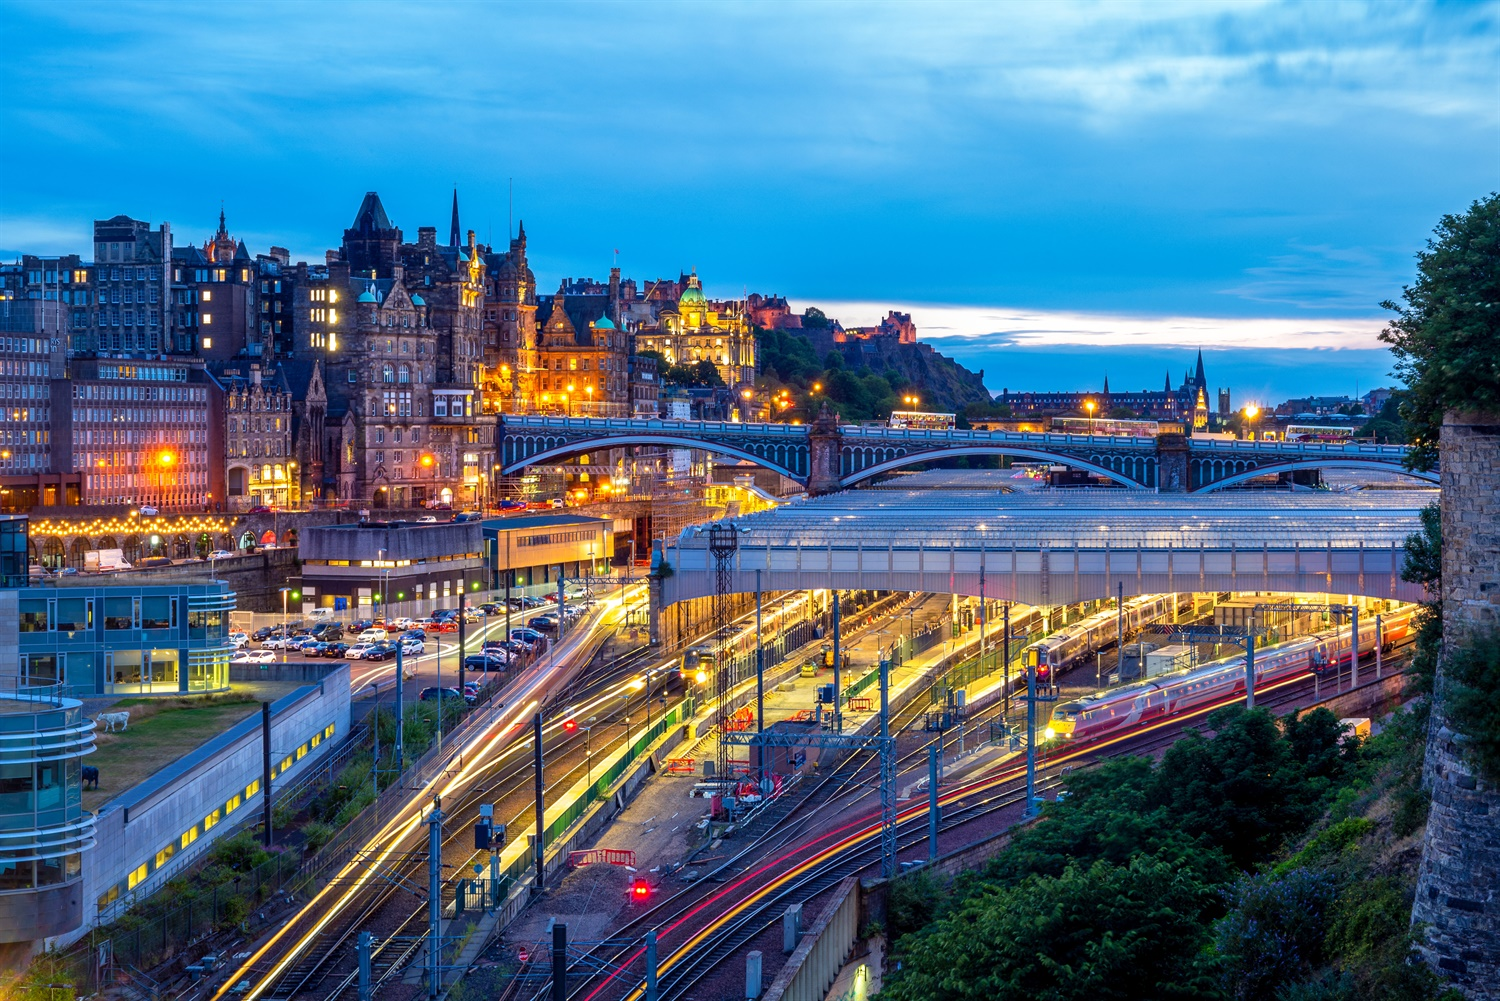 Major redevelopment plans for Edinburgh Waverley station unveiled